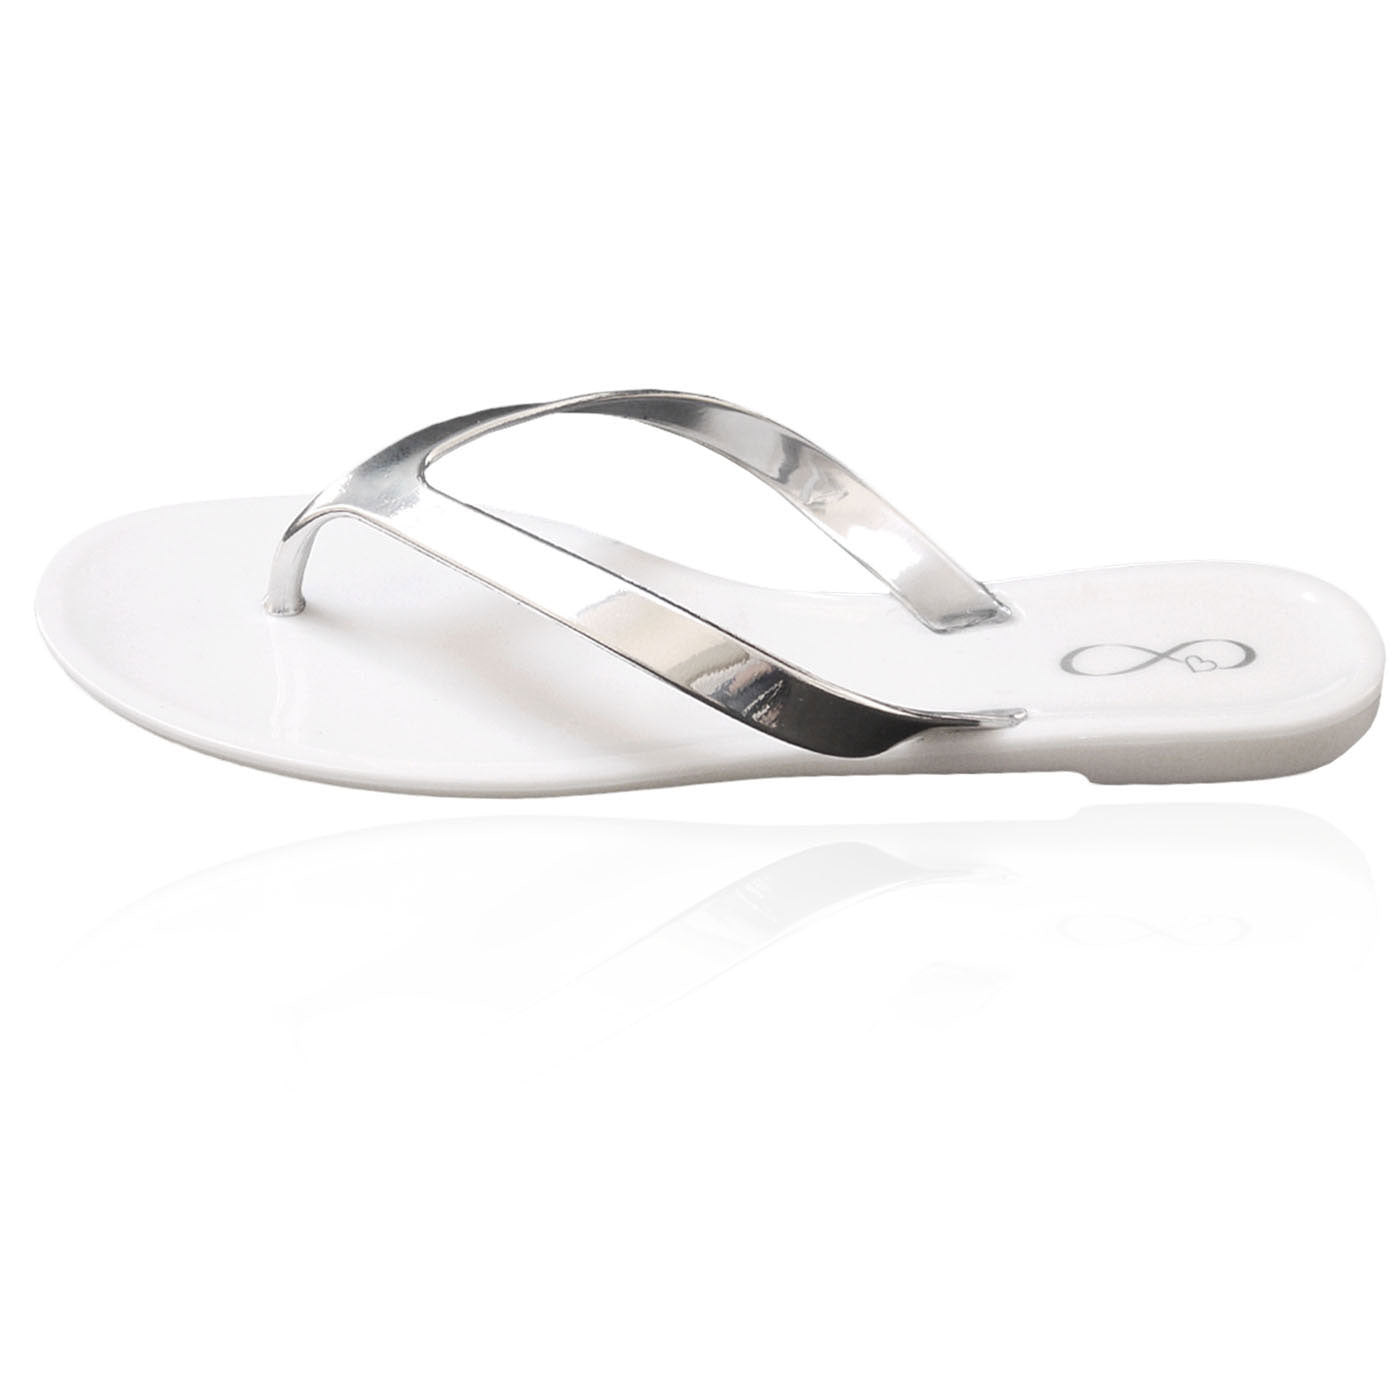 White and metallic silver jelly flip flop